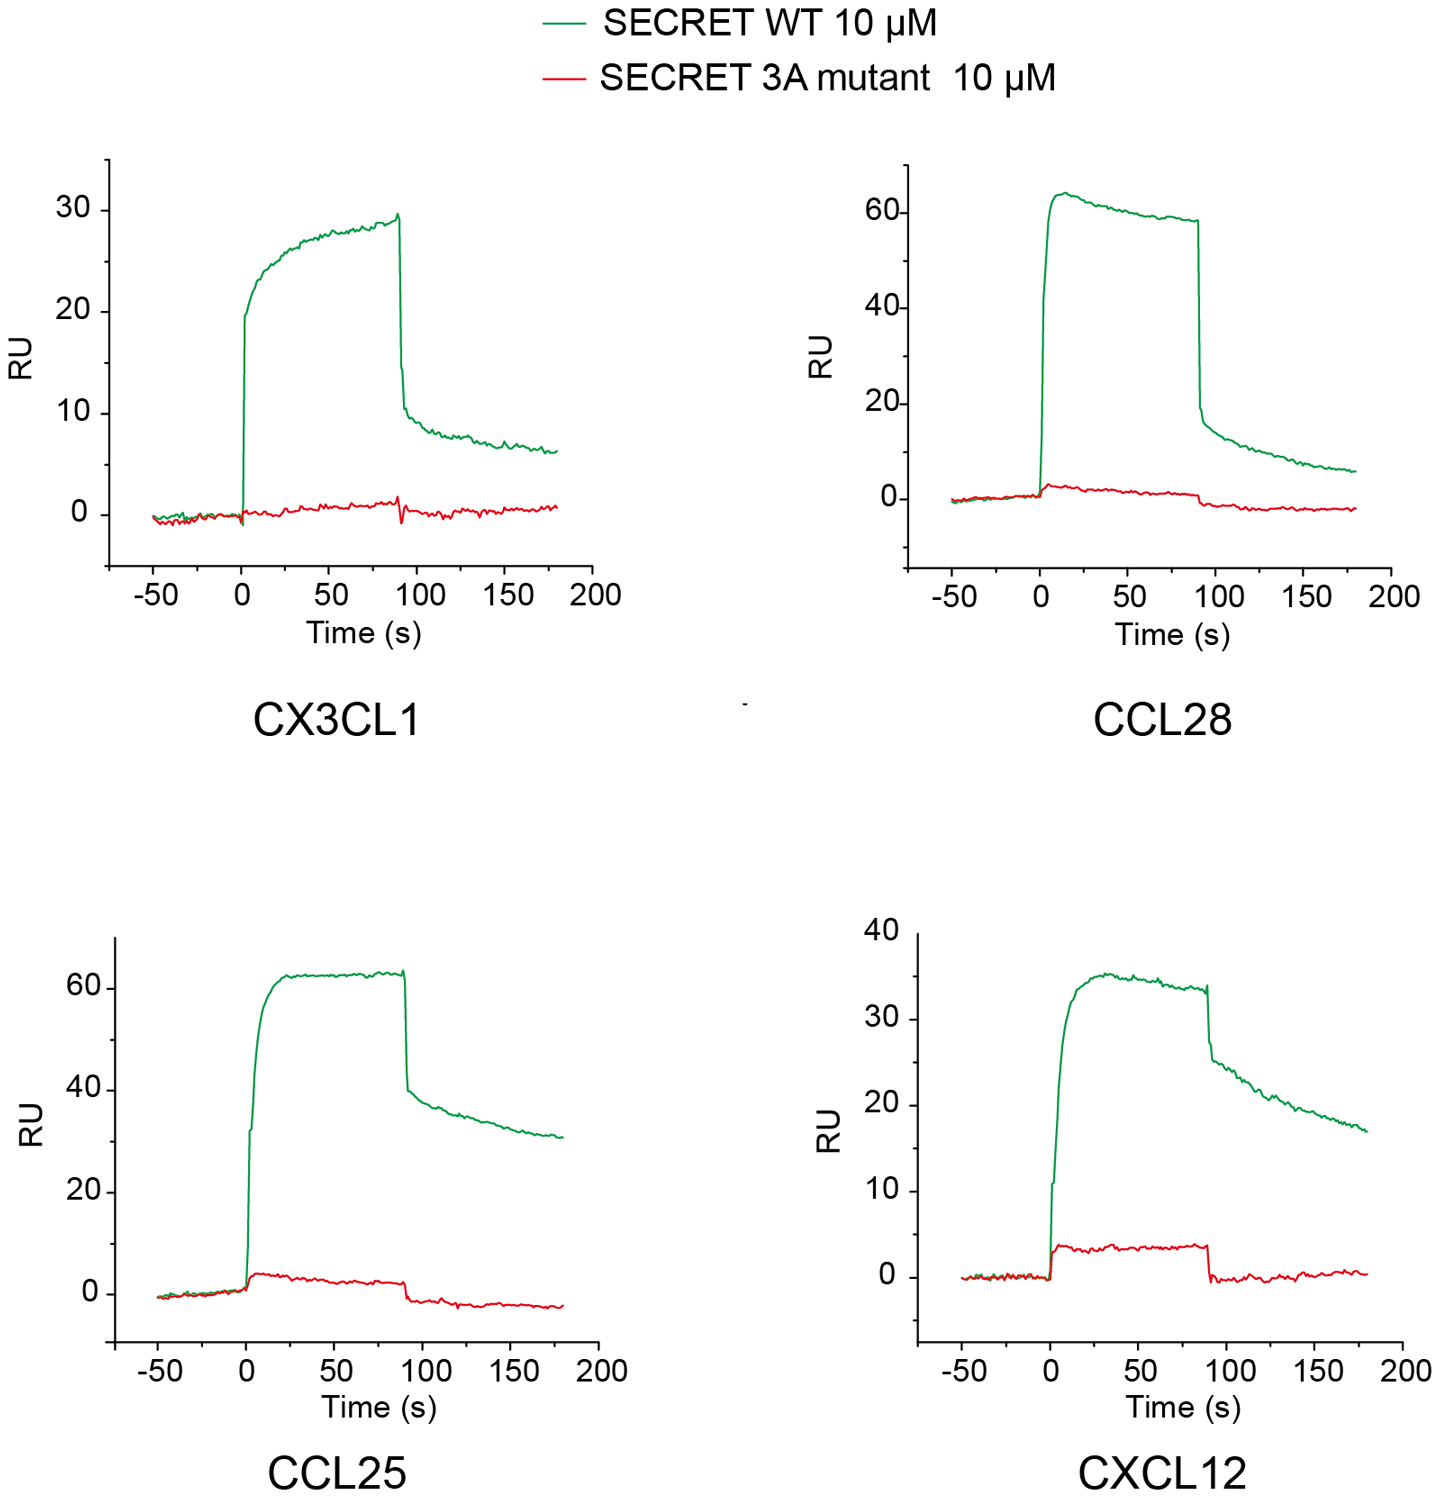 Sensograms of passing the SECRET domain wild type (green) and D167A/E169A/D316A mutant (red) through the CM5 chip surface immobilized with chemokines CX3CL1, CCL28, CCL25, and CXCL12, respectively.